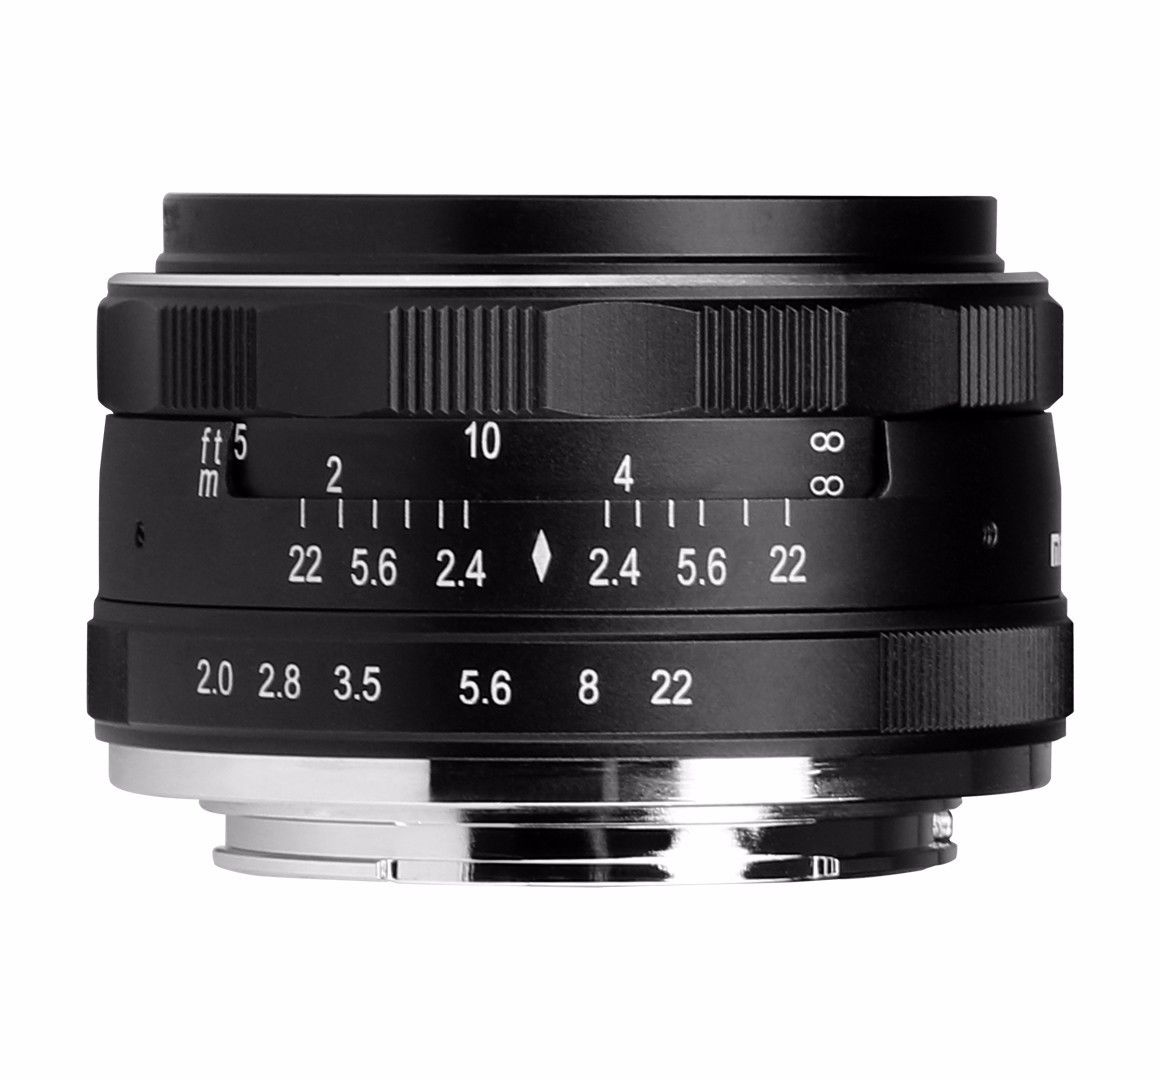 50mm F2.0 Aperture Manual Focus Lens APS-C for eosm nikon1 m43 Sony e mount NEX3/5T/6/7 A5000 A6000 a6300 fuji xt1 camera camera mirroless 25mm f1 4 c mount camera lenses for aps c m4 3 fx eosm n1 p q nex e p1 e pl1 g1 gf1 gh1 nex 3 nex 5